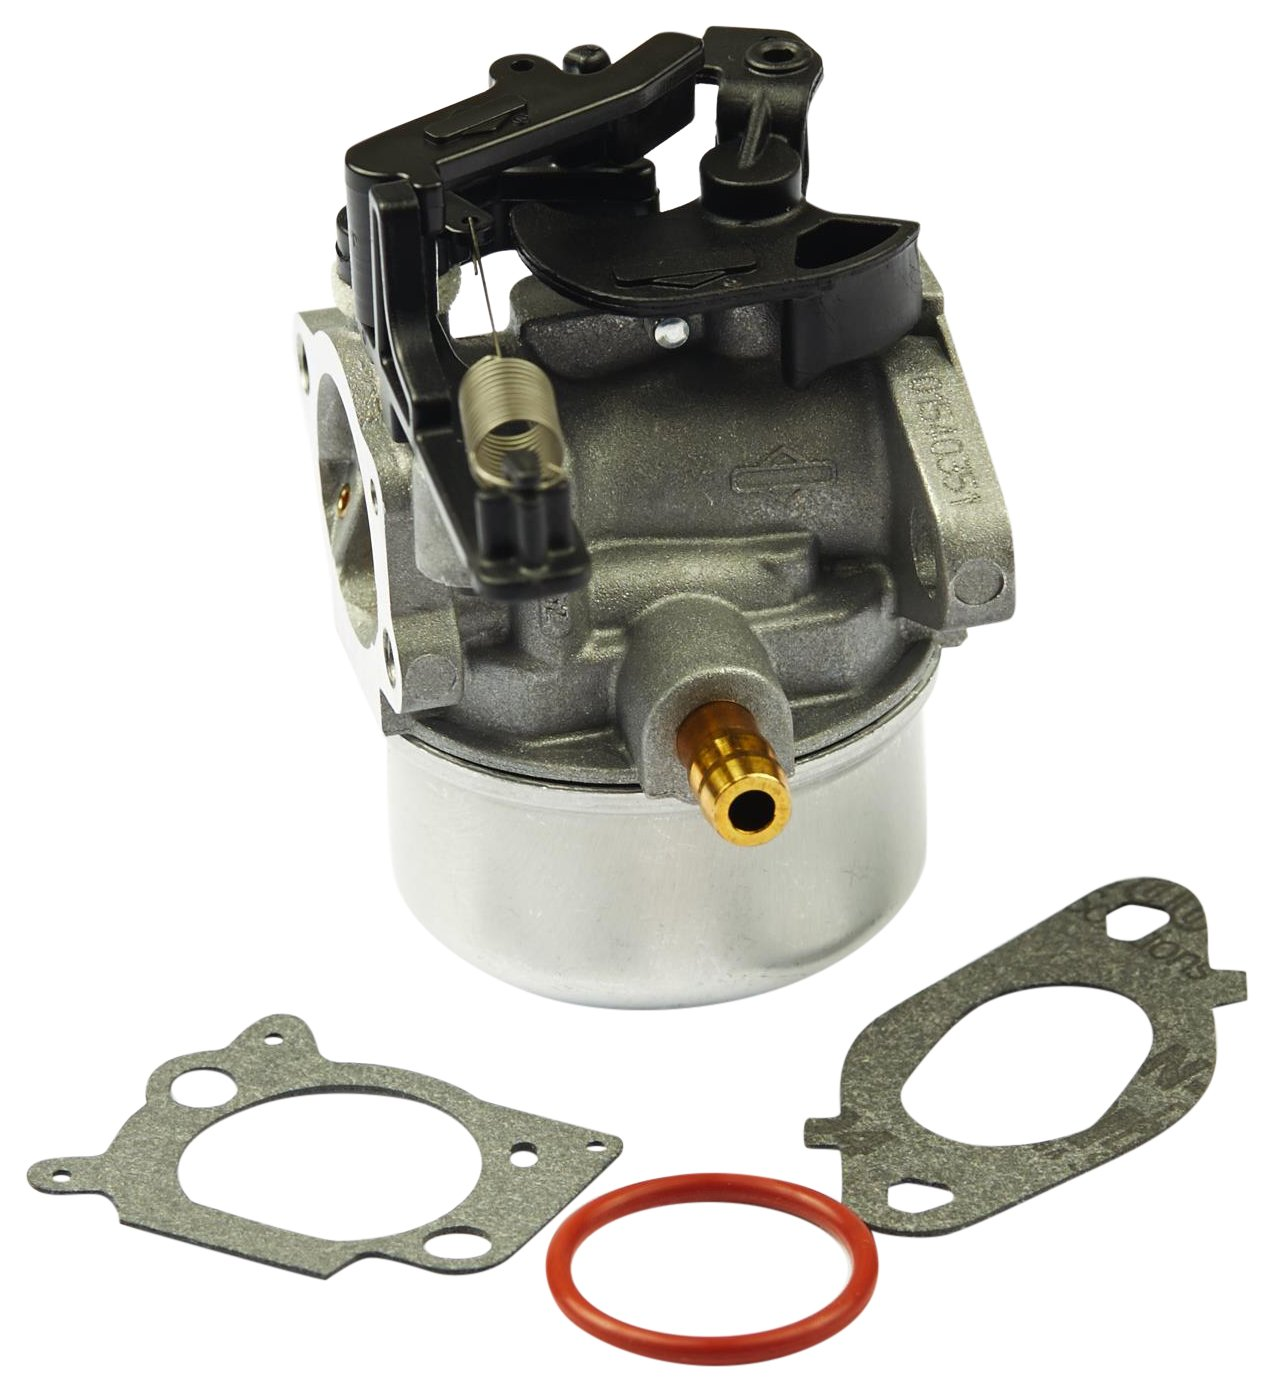 Briggs Stratton 591137 Carburetor Replaces 590948 And Engine Schematics Lawn Garden Tool Replacement Parts Outdoor